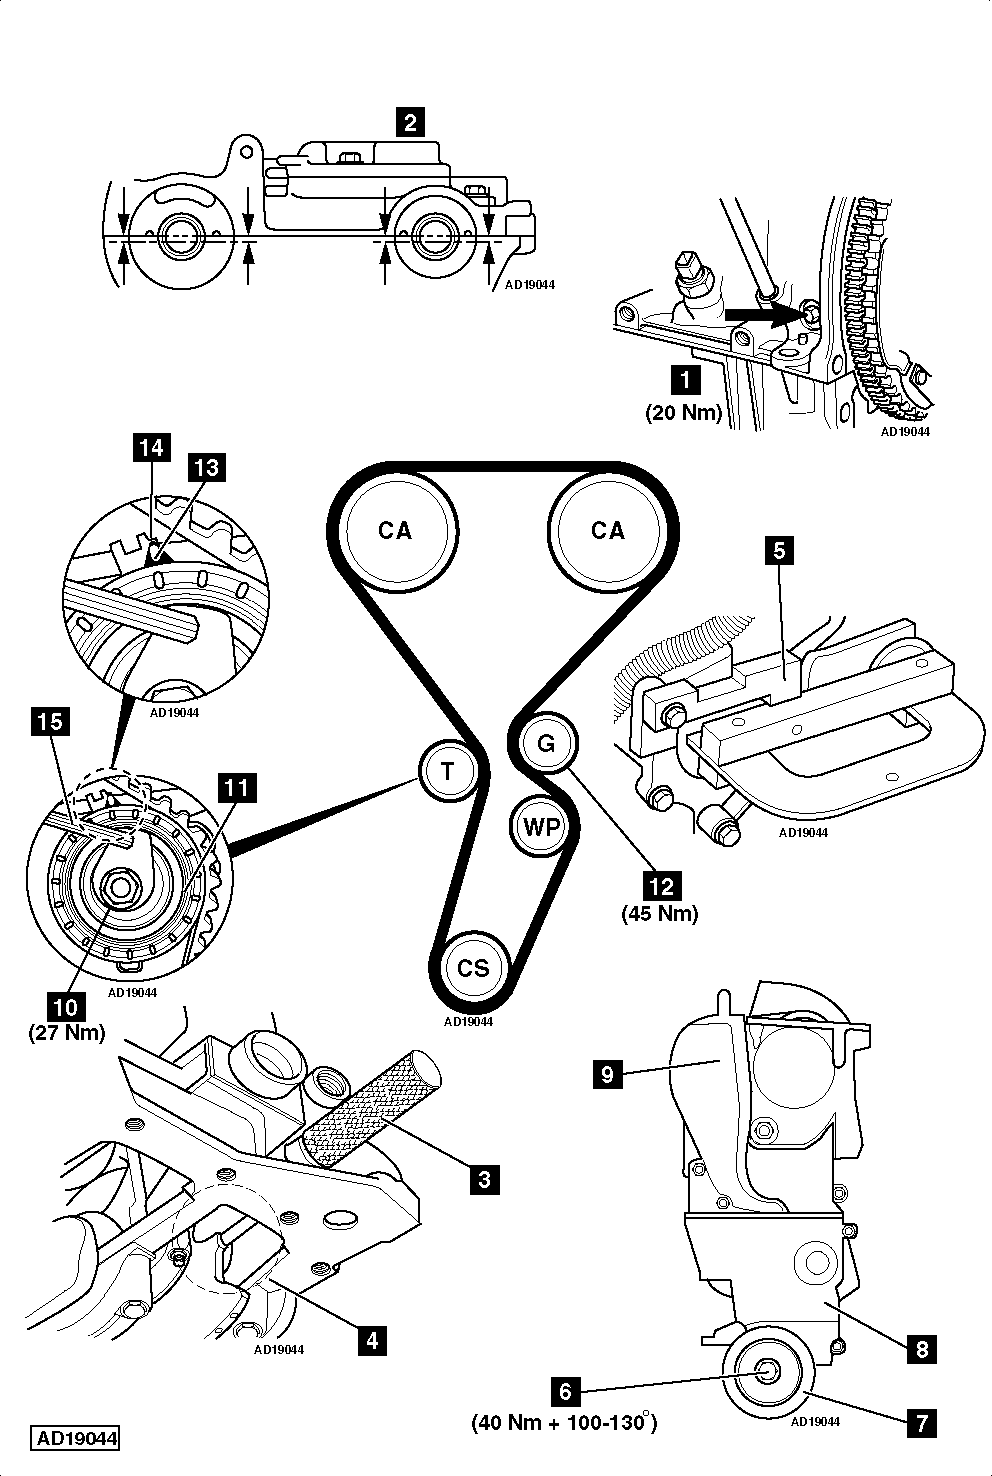 Dodge Caravan Rack And Pinion Replacement besides Zero Turn Bobcat Wire Diagram further 1994 Isuzu Rodeo Cam Timing Diagram also Audio Wiring Diagrams Gmc Diagram Schemes besides 5lb7v Mitsubshi Montero Xls Timing Belt Marks Checked. on isuzu rodeo timing belt